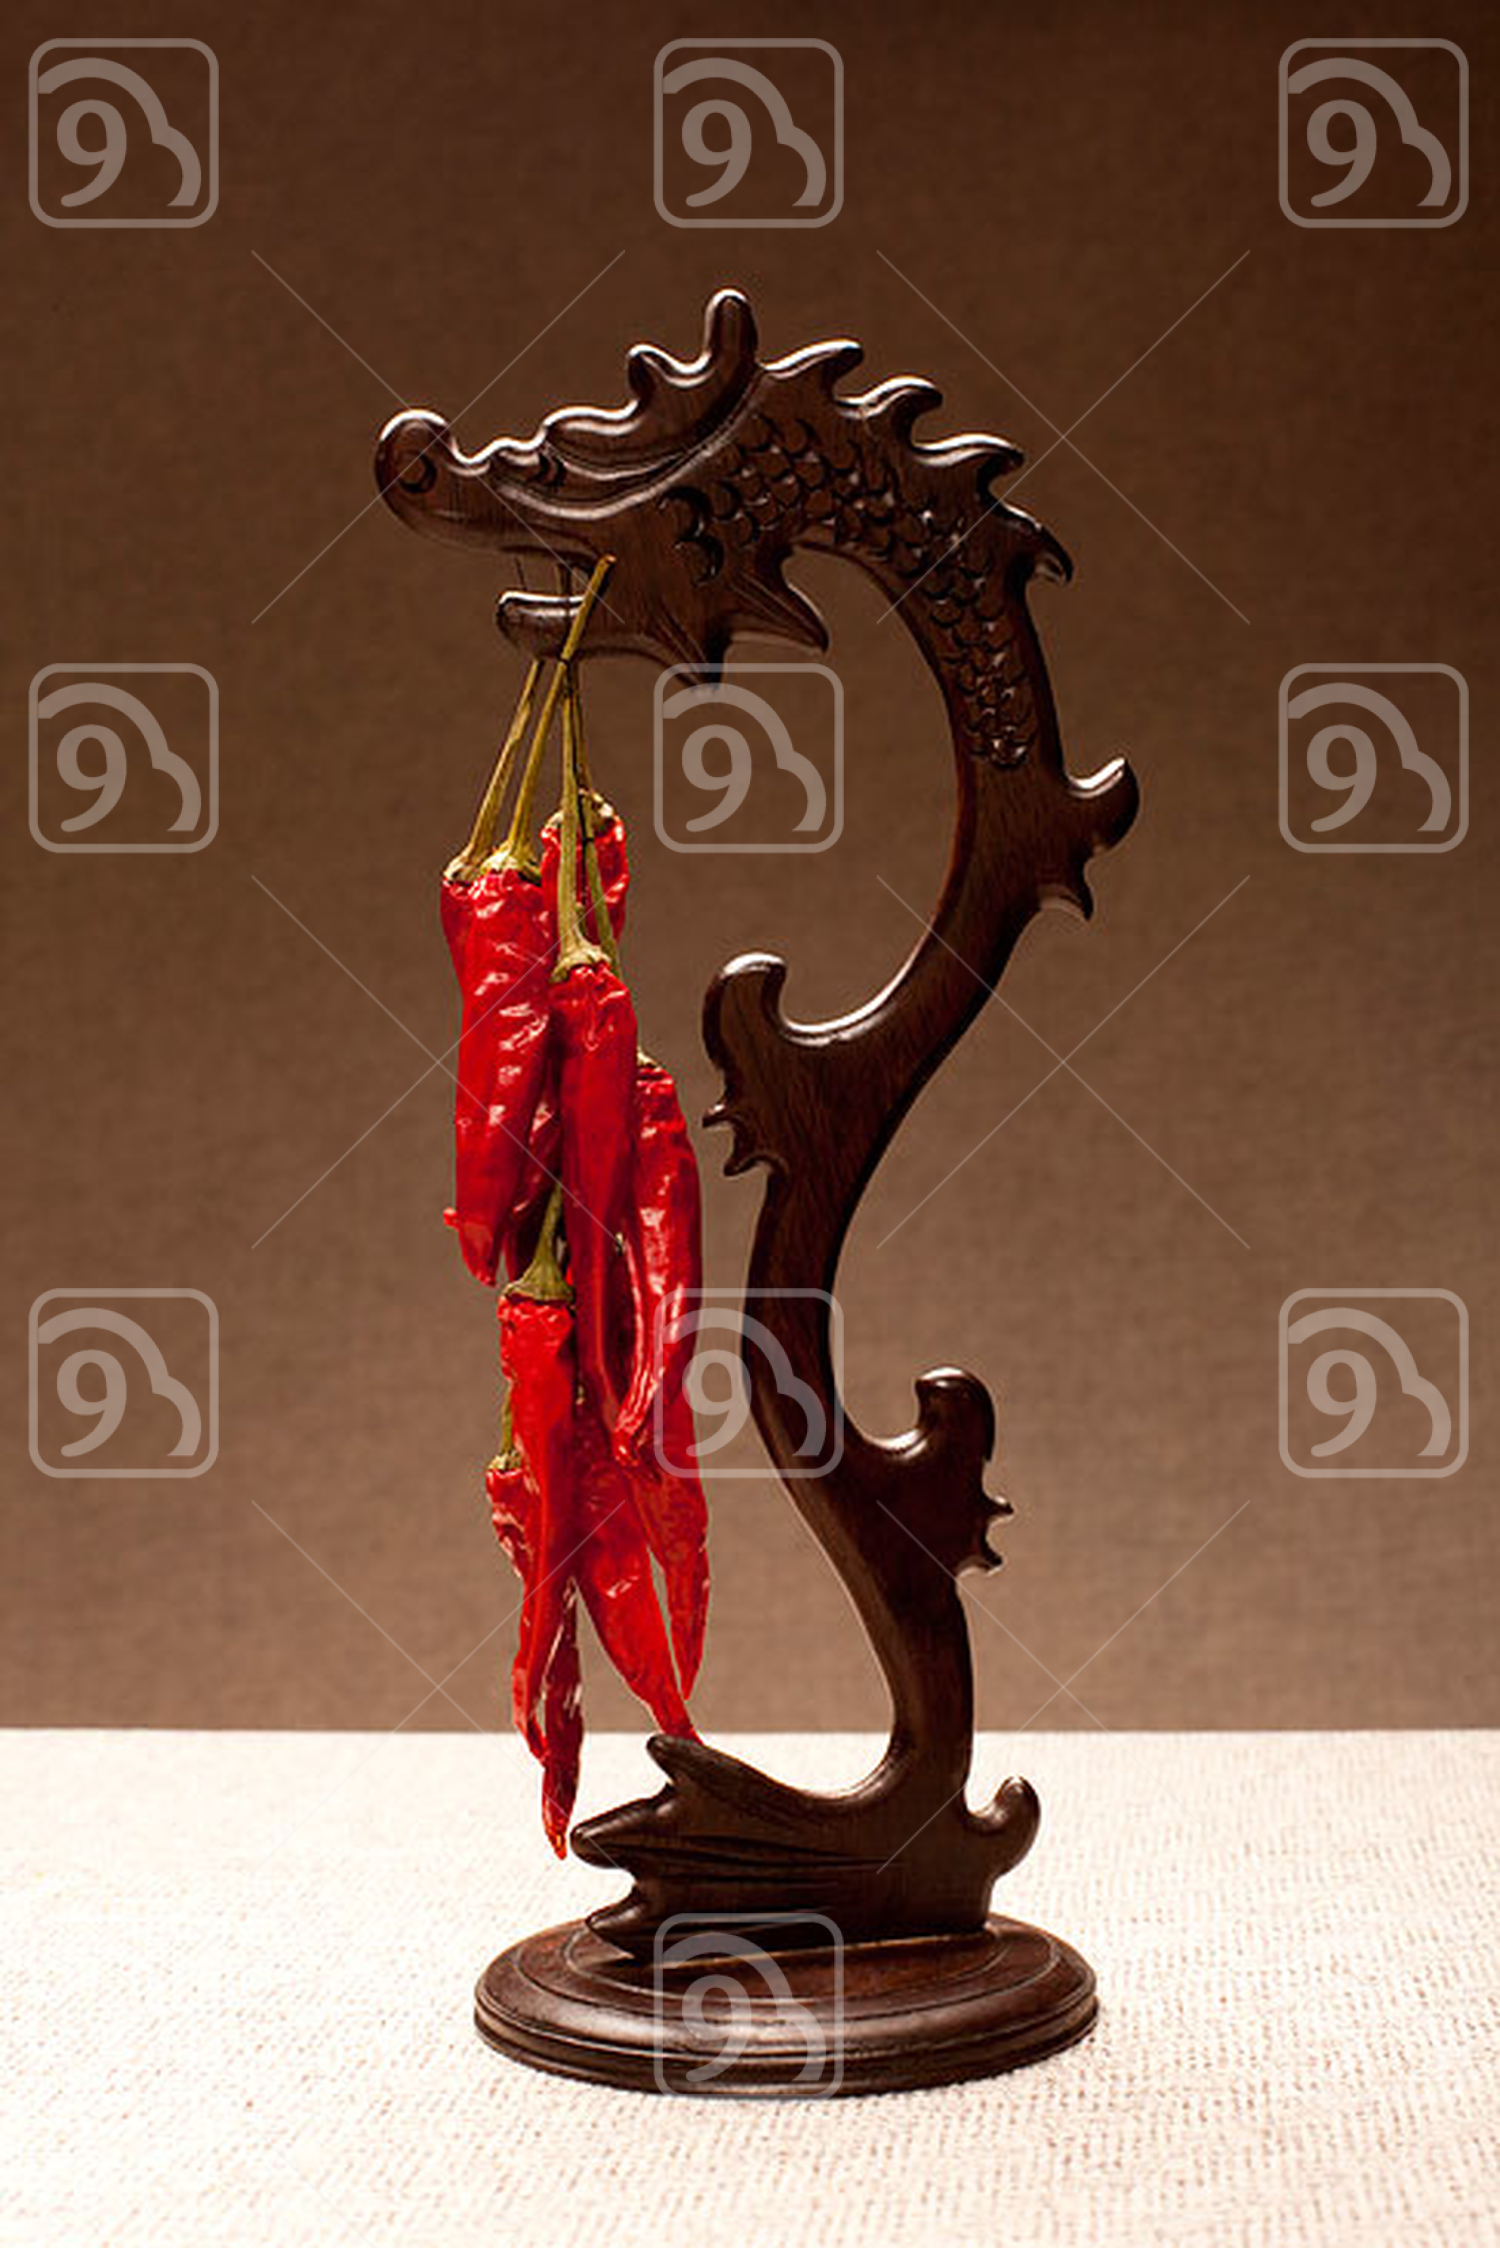 Chinese dragon and dry red pepper